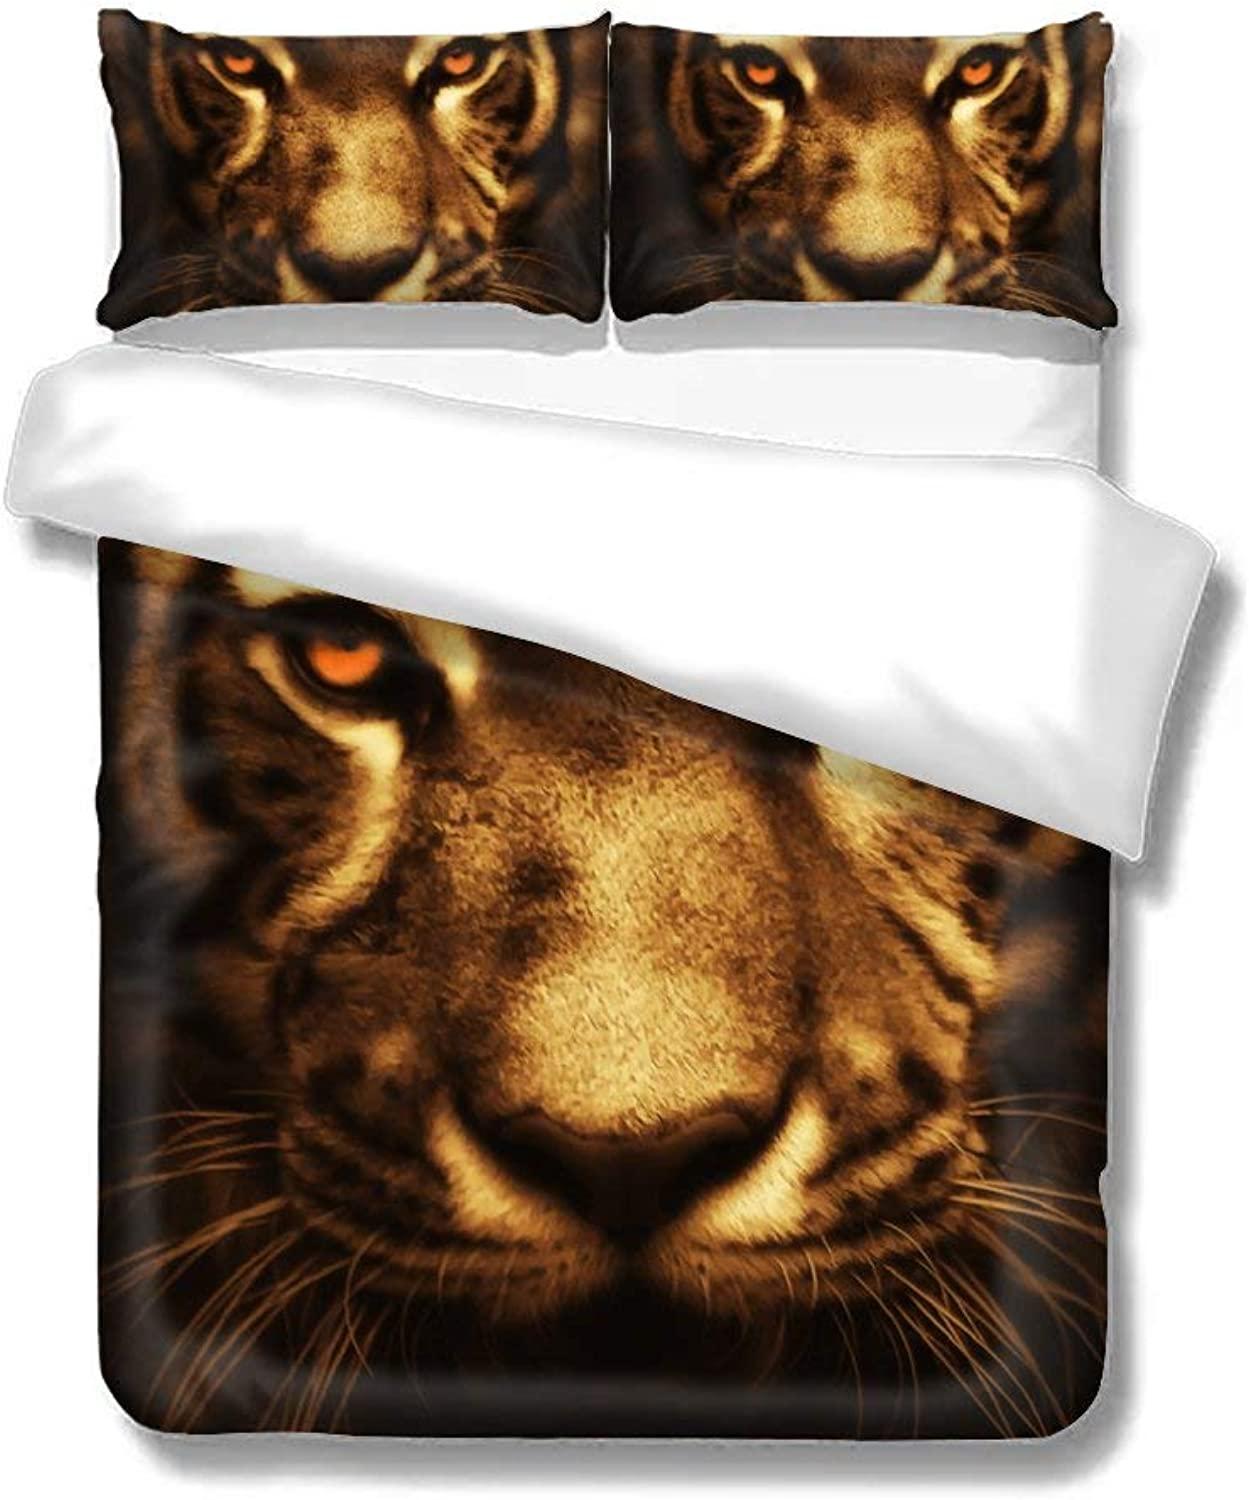 Set of Three On The Bed Tiger Mighty Ferocious Animal Feline Home Bedding Duvet Cover Set Bed Sheets Set Soft Comfortable Breathable King Size